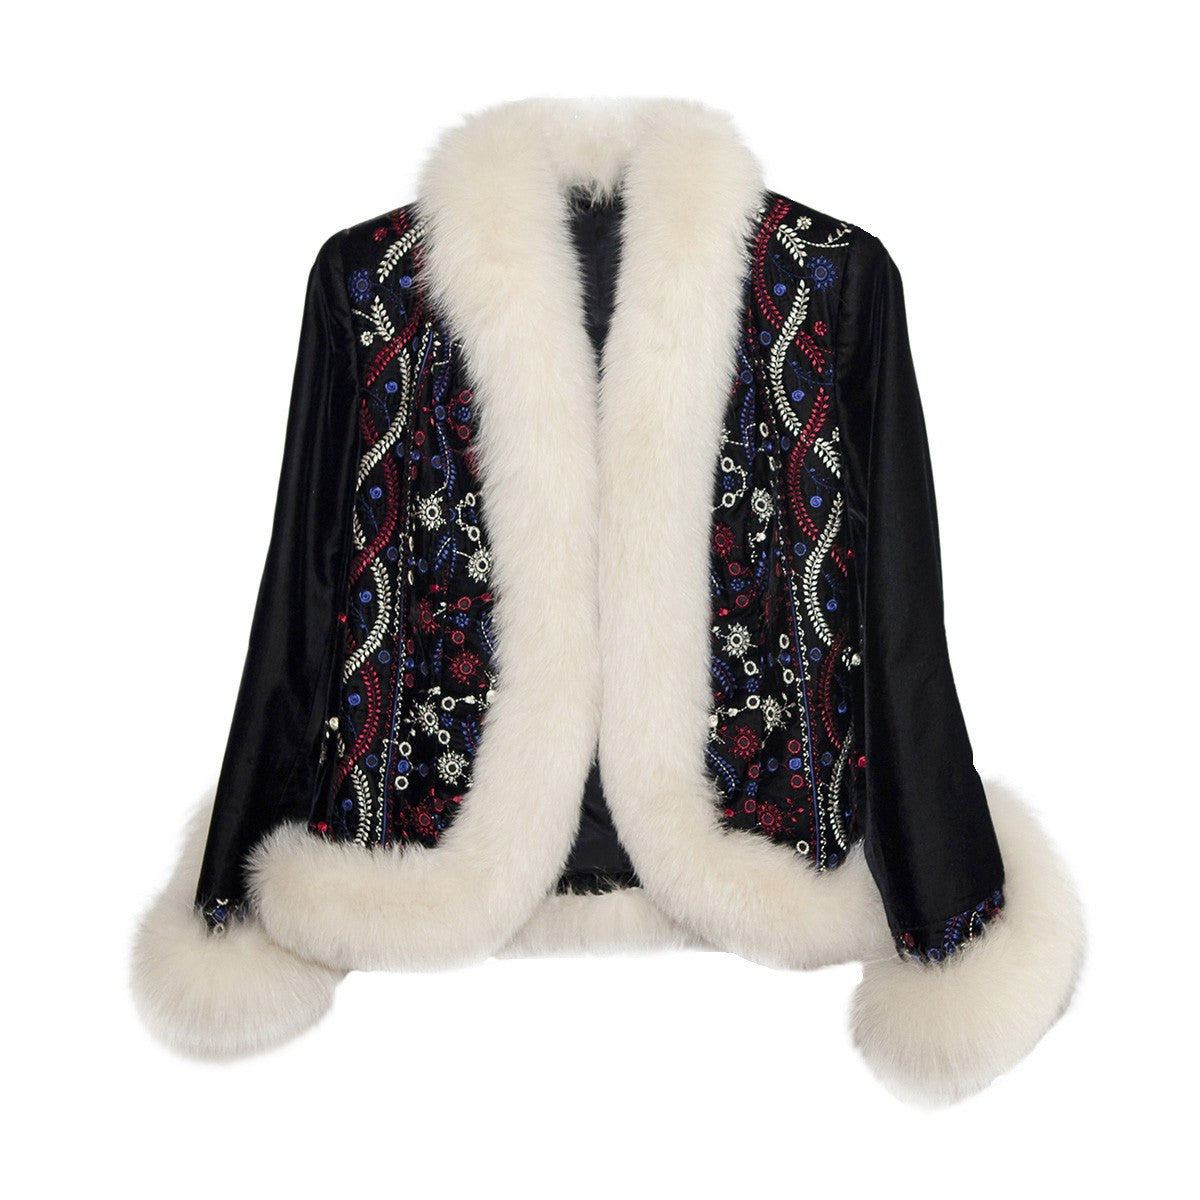 White Faux Fur & Embroidered Après-ski Jacket, Black Velveteen, Made in France